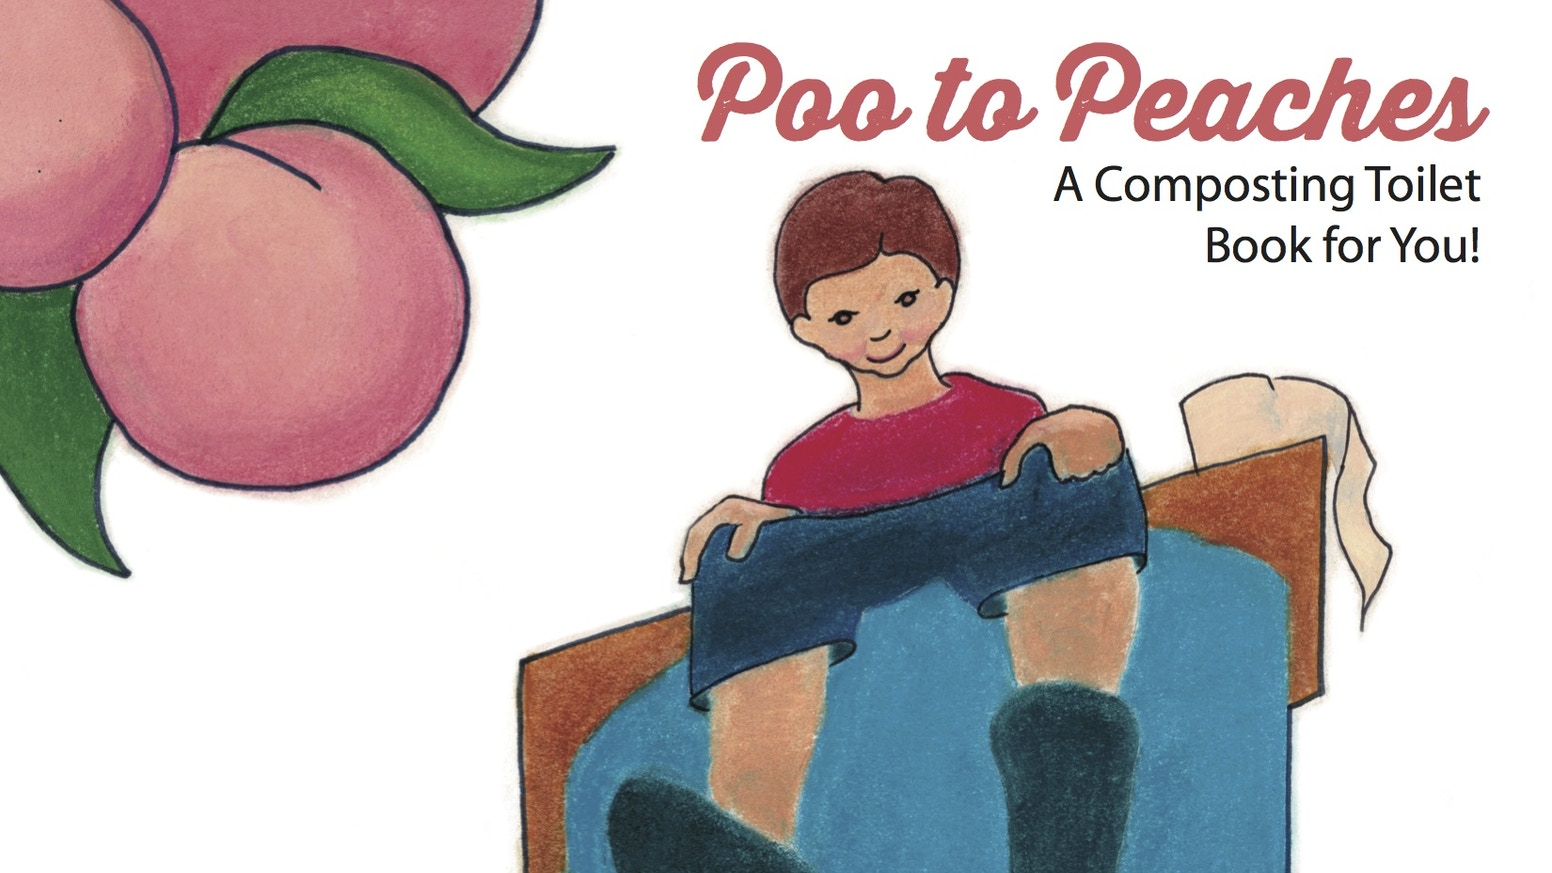 Don't flush it, compost it! Poo to Peaches will teach children about turning wastes into resources with composting toilets.